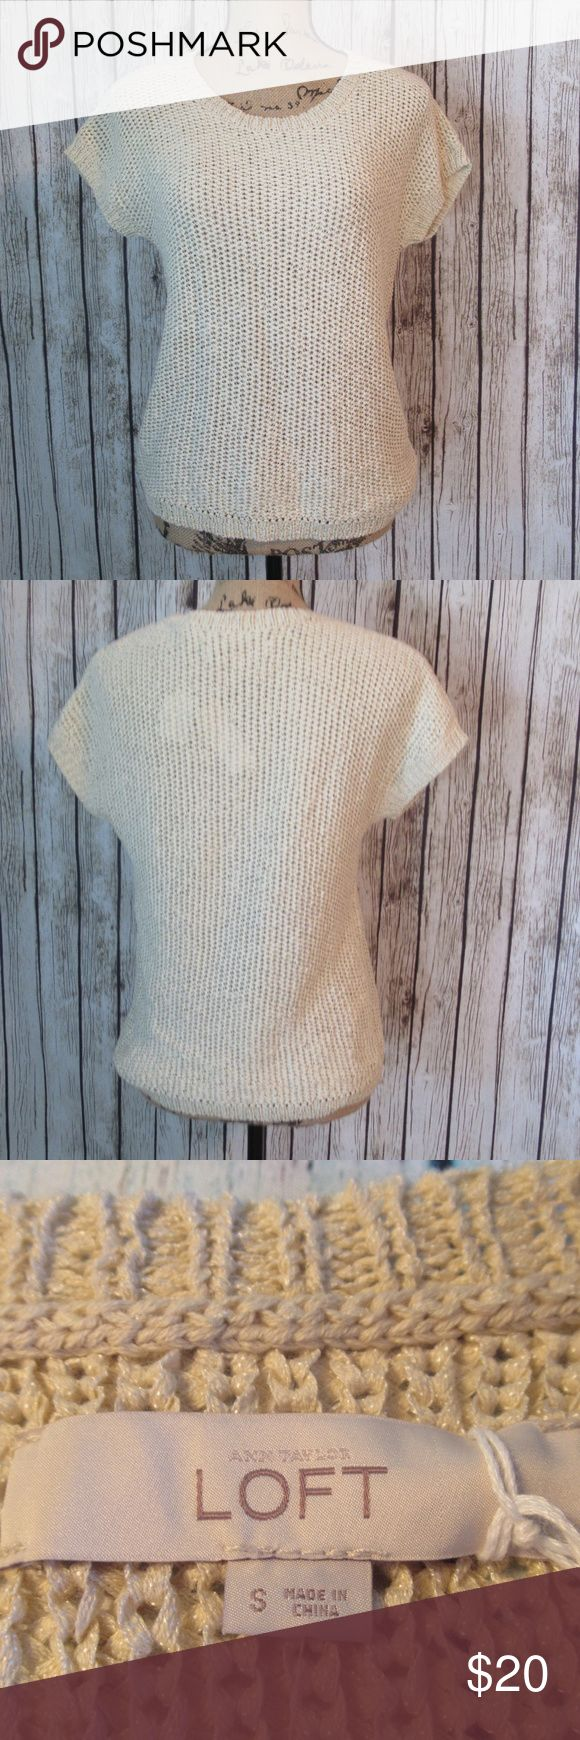 "Ann Taylor Loft Cream Cap Sleeve Woven Sweater BNWT Loft loose weave short/cap sleeve crew neck sweater. Cream colored with a touch of metallic. Size S. 72% cotton 24% polyester.   Approx  measurements:  Chest 18"" * Length 22""  T880204 LOFT Sweaters Crew & Scoop Necks"